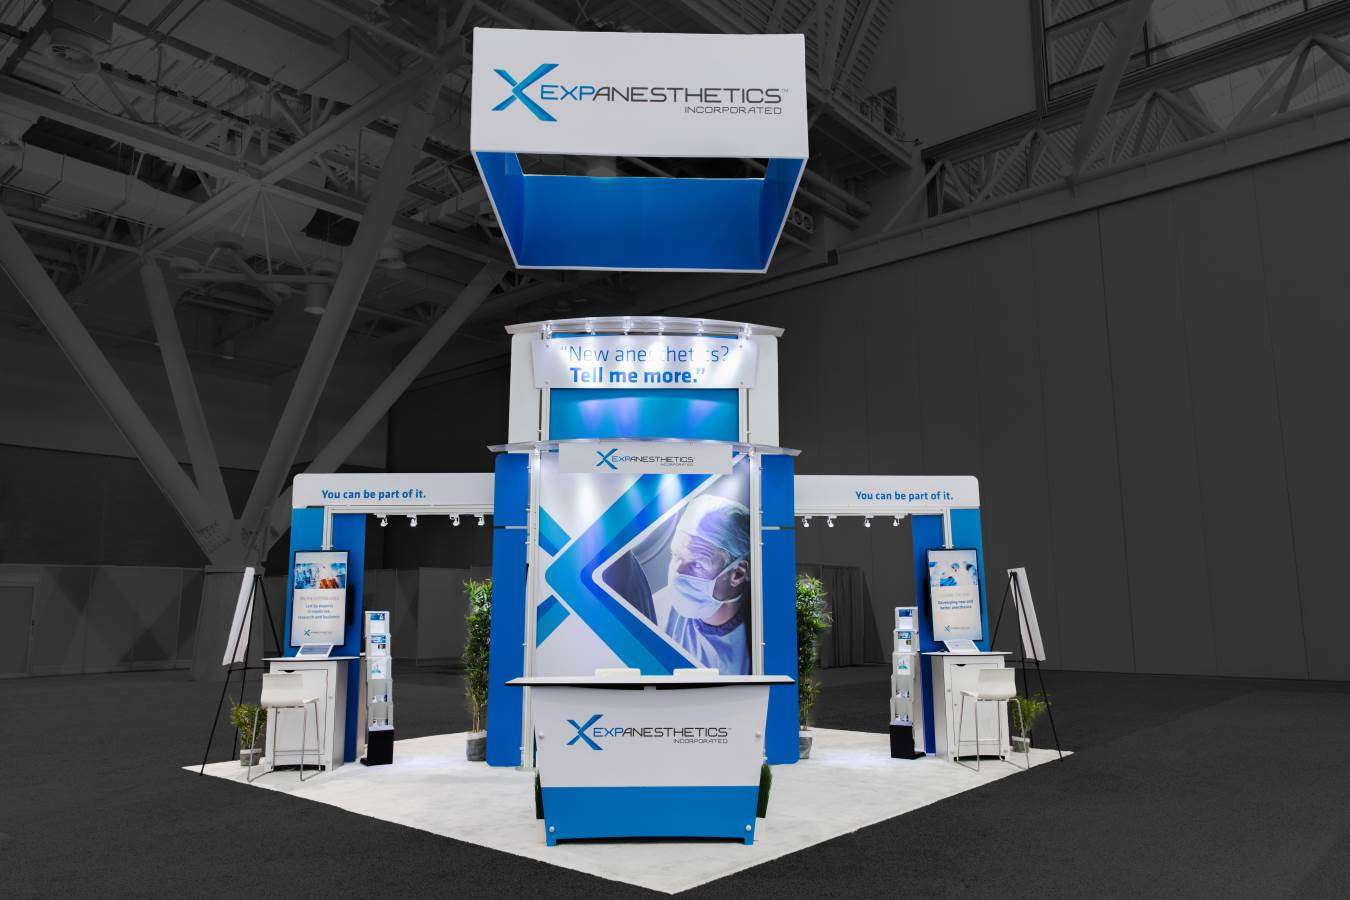 20x20 Rental Booth for conference in Boston